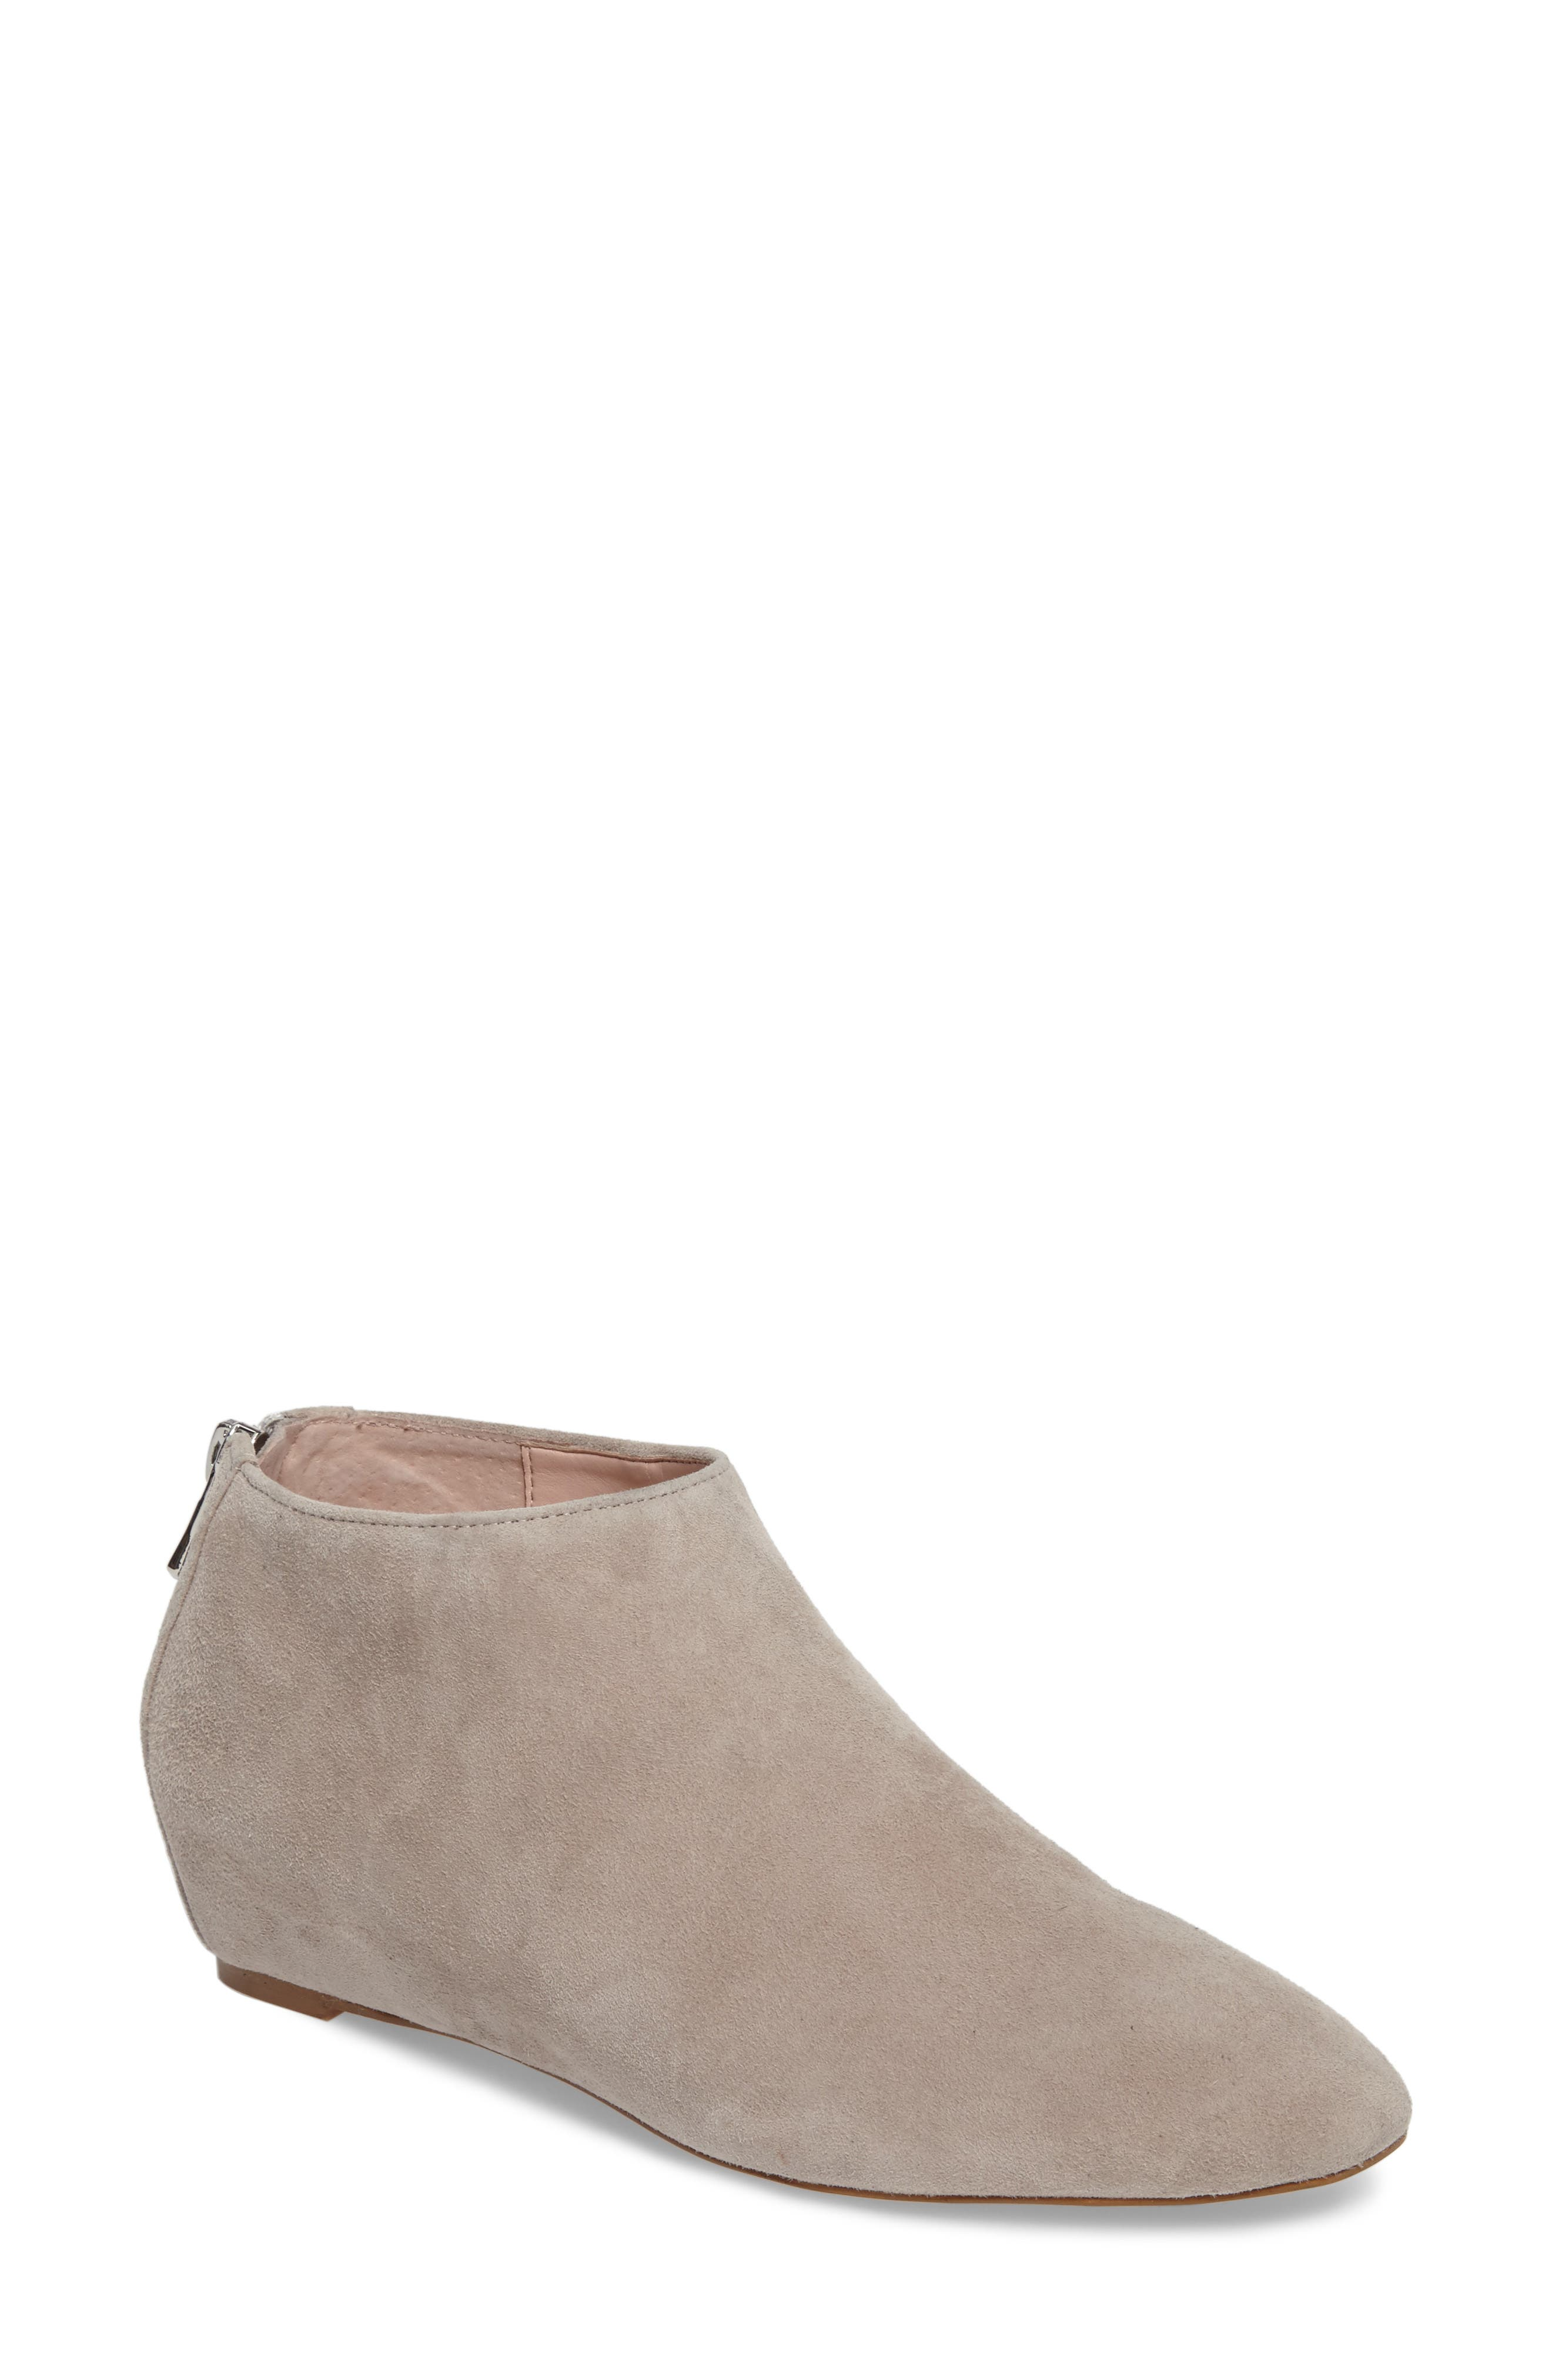 Aves Les Filles Beatrice Ankle Boot,                             Main thumbnail 4, color,